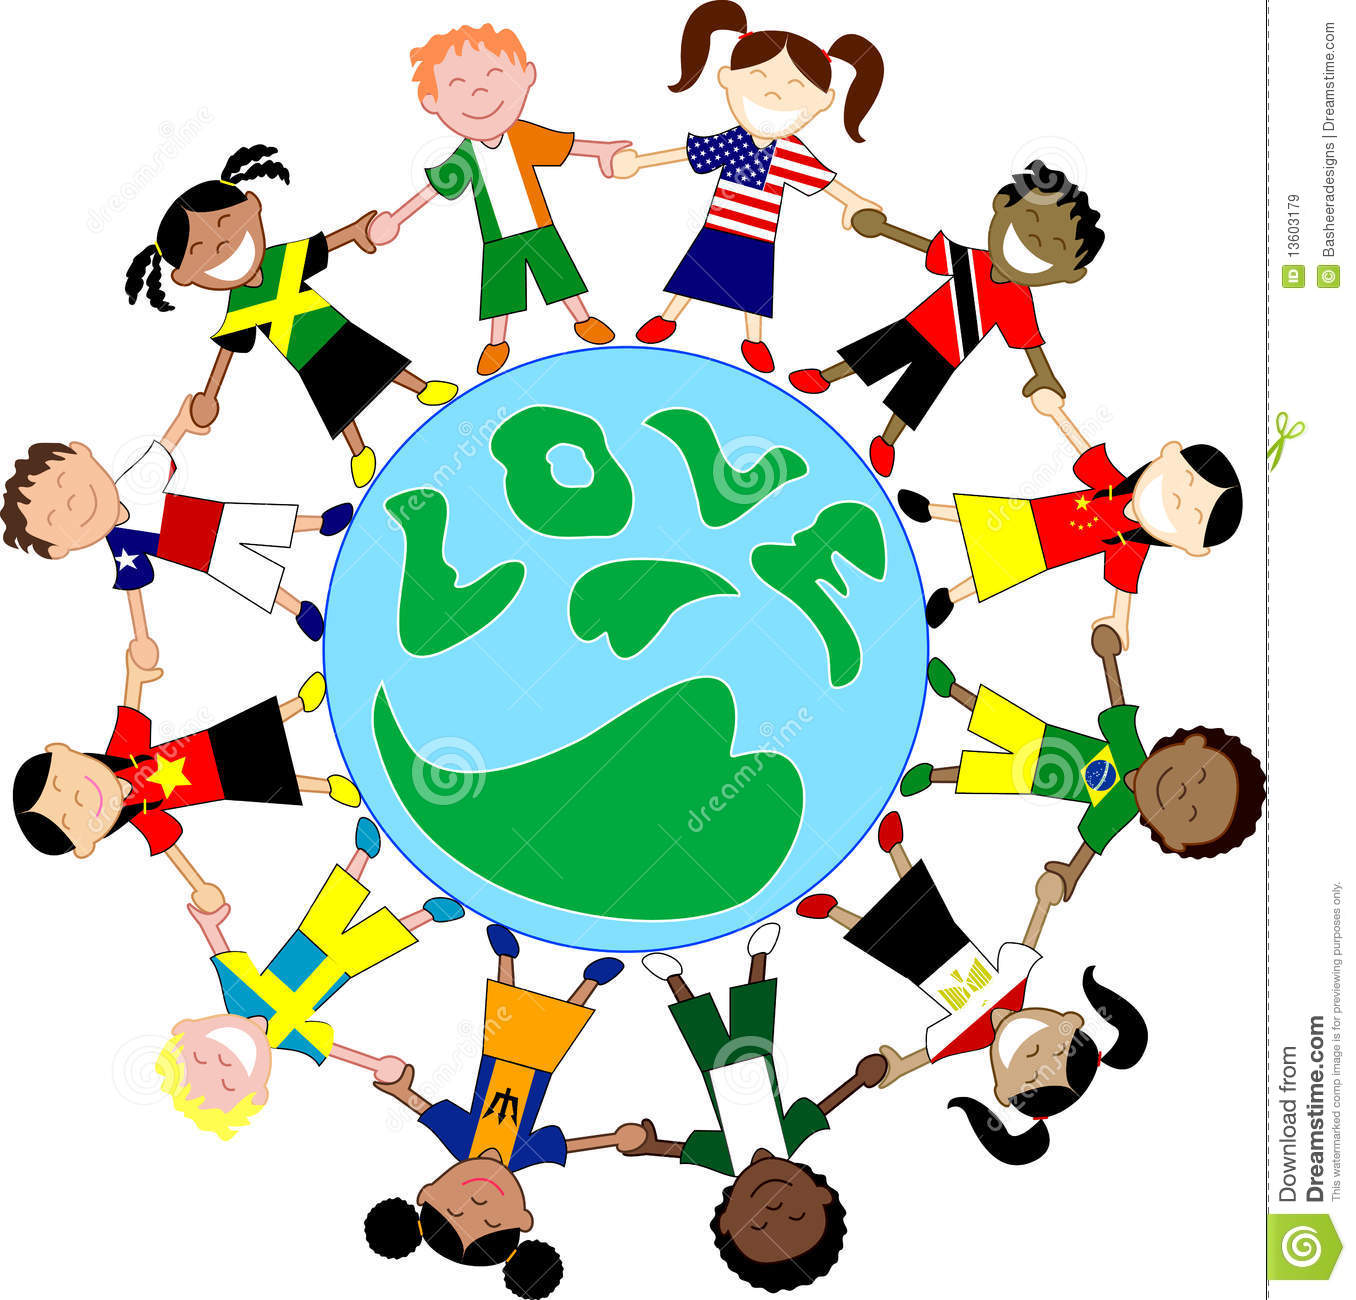 jamaica flag map with Royalty Free Stock Images Kids Flag Shirts Love Globe Image13603179 on Cuba further Digest Participating Countries in addition Imagen De Archivo Correspondencia Y Ciudades De Italia Image15975421 furthermore Rastafarianism Jesus And The Bible Ss also Page4.